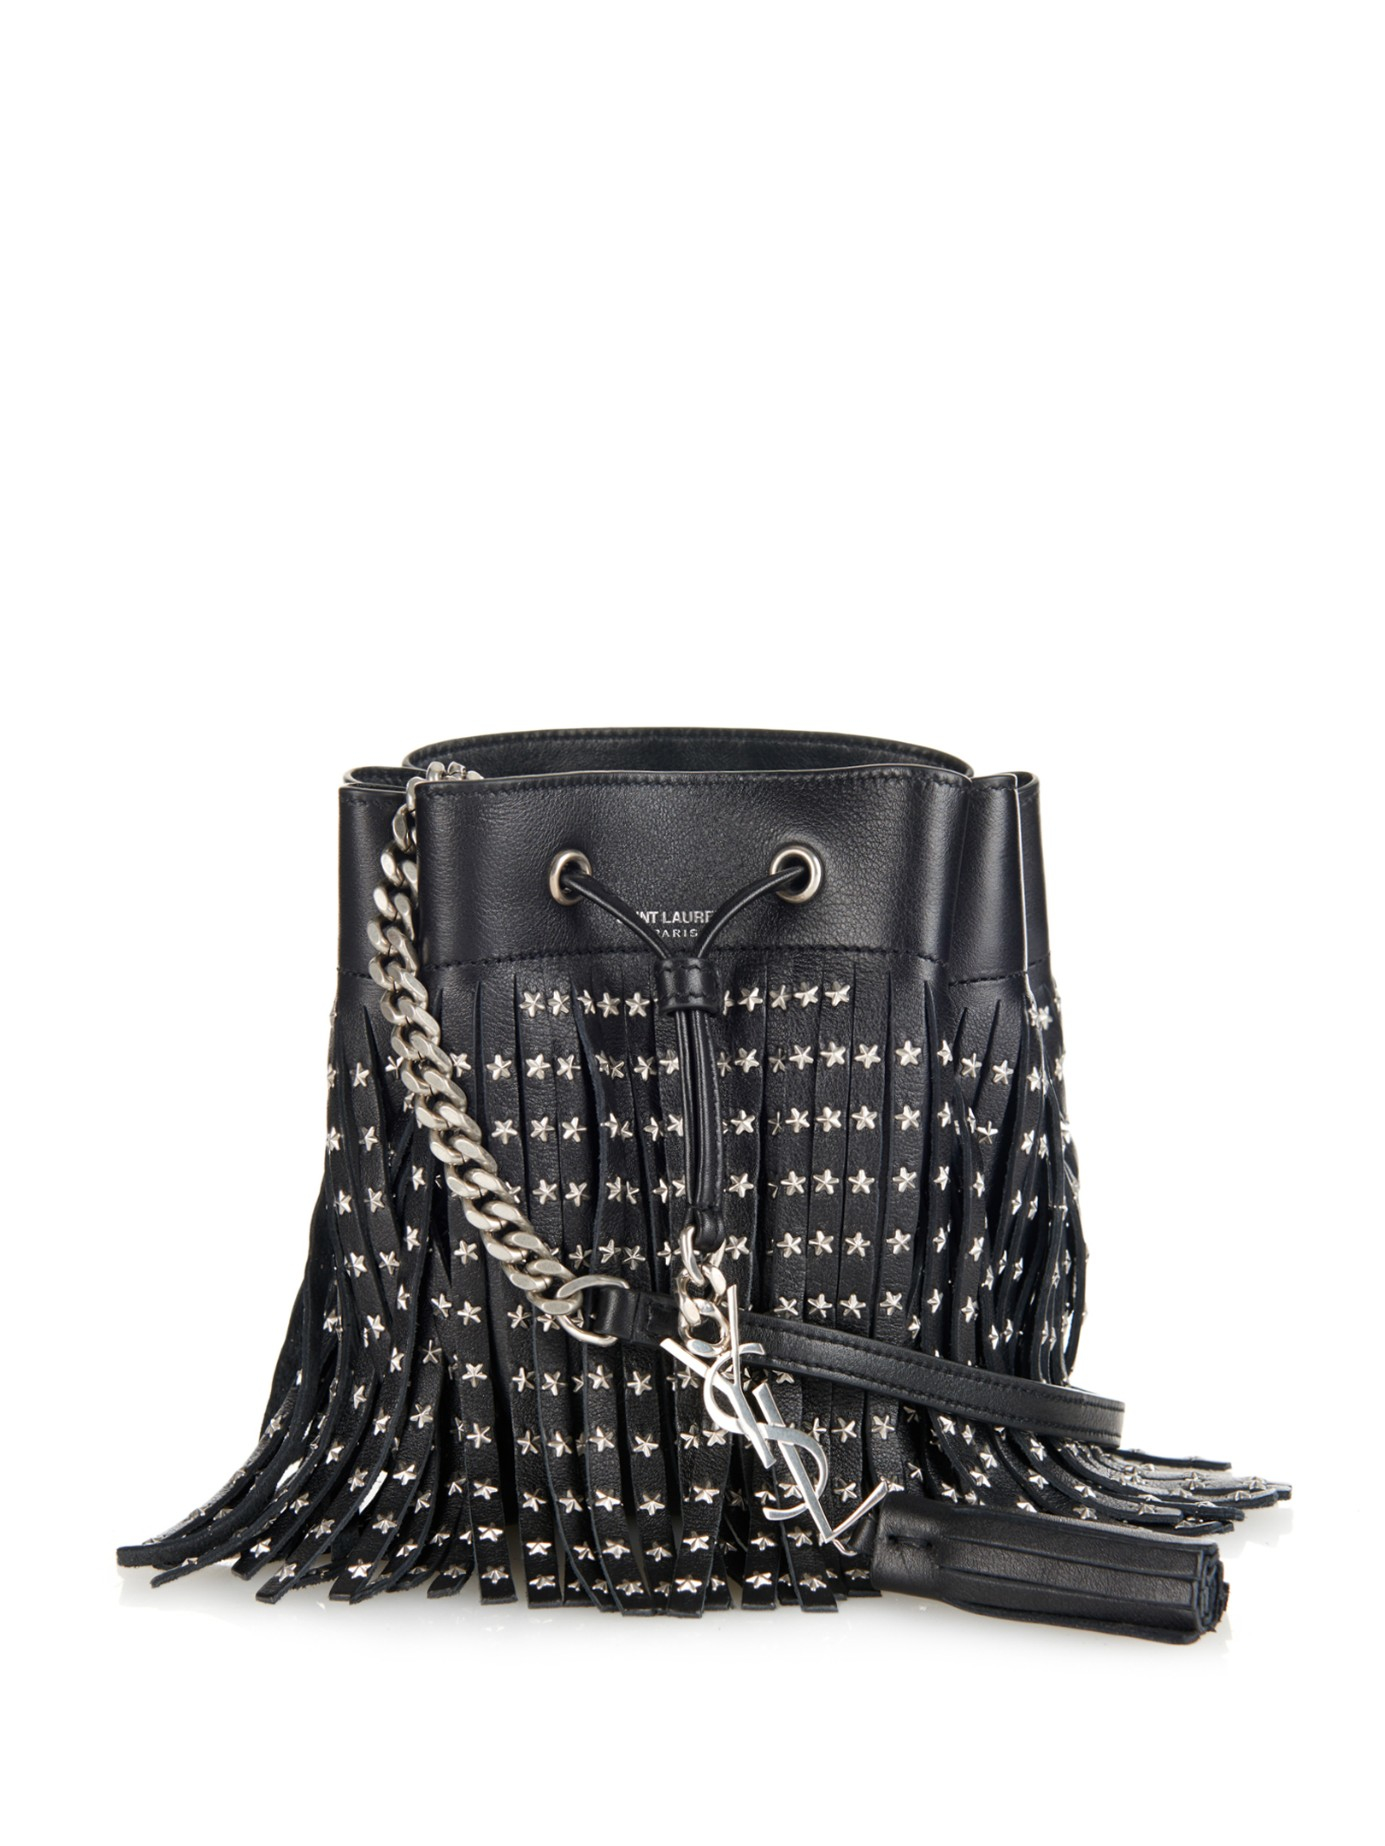 Lyst - Saint Laurent Bourse Mini Fringed Leather Cross-body Bag in Black 54f835eb1dedd